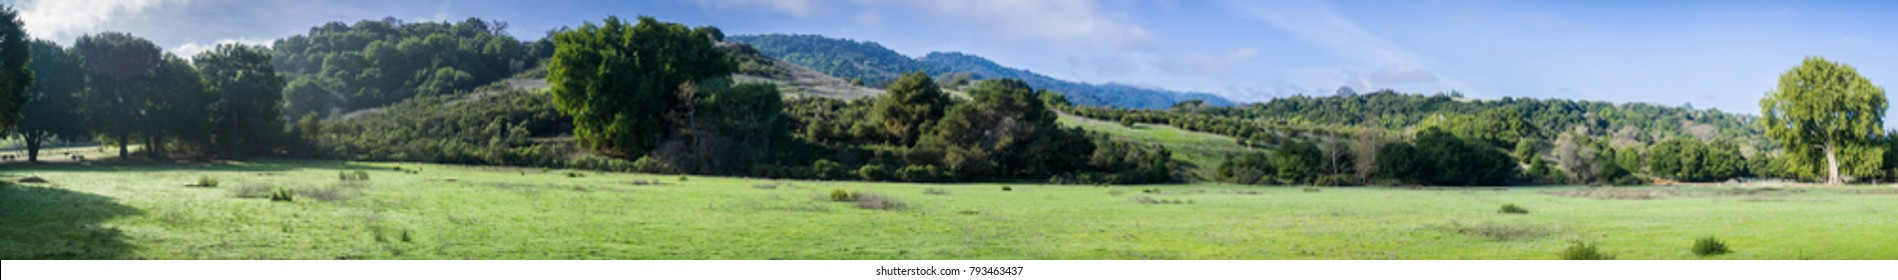 Panoramic view of a green meadow on a sunny morning in Rancho San Antonio County Park, Santa Cruz mountains, Cupertino, Santa Clara county, California